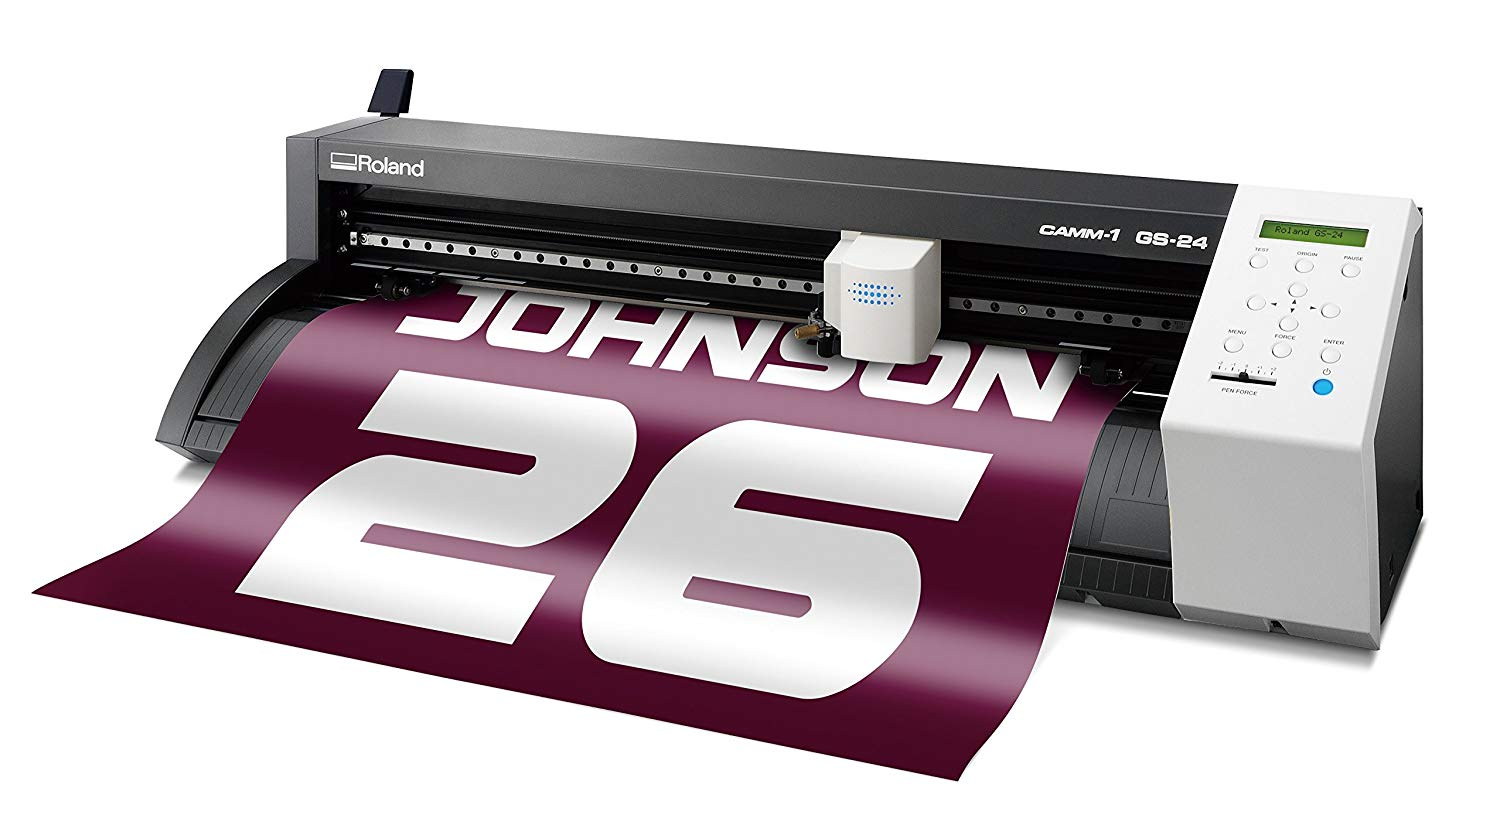 product photo of Roland GS-24 Vinyl Cutter